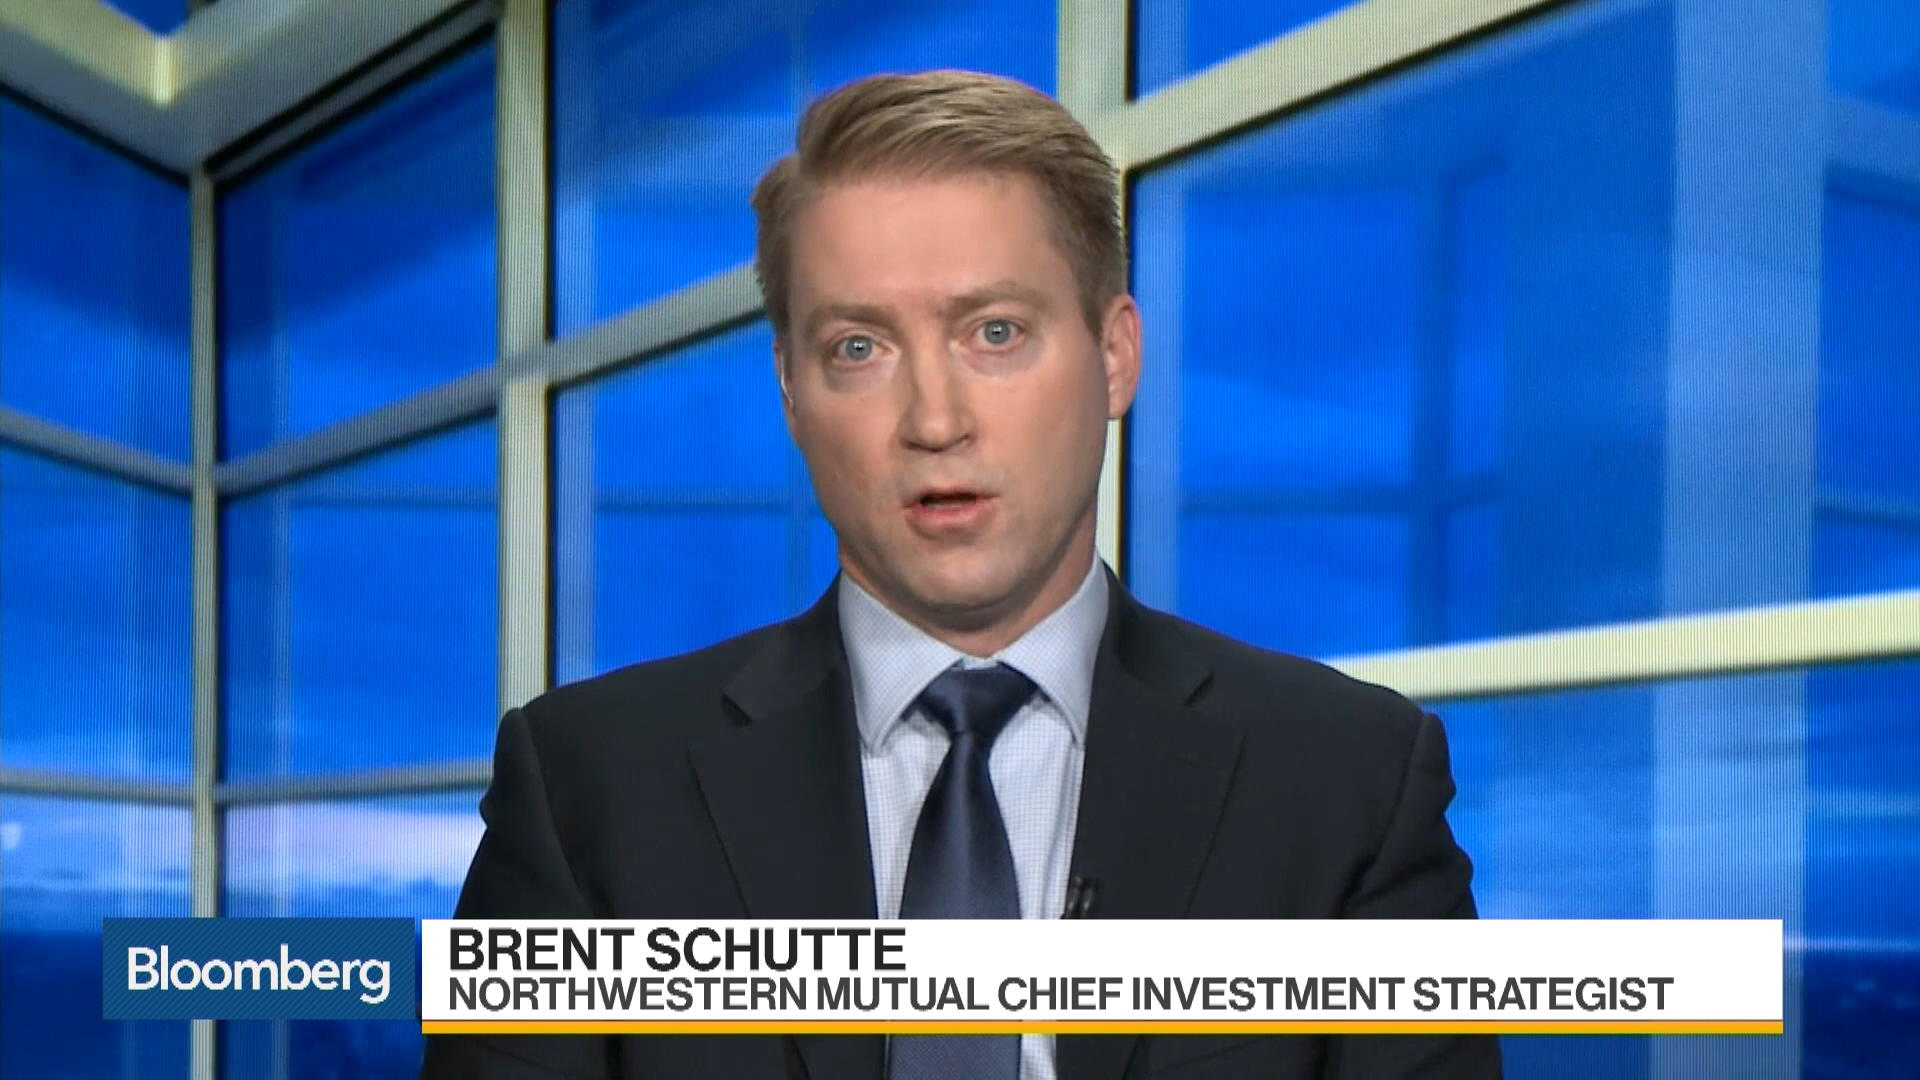 Https Www Bloomberg Com News Videos 2018 01 19 Aviva Investors Diebel Says 10 Year Notes Could Easily Get To 2 75 Video Https Bbgvod S3 Us East1 Global Ssl Fastly Net M Nzmzodkwmg Mjq1ntg2nw Intvdiebel0119d 150 Mp4 Https Assets Bwbx Io